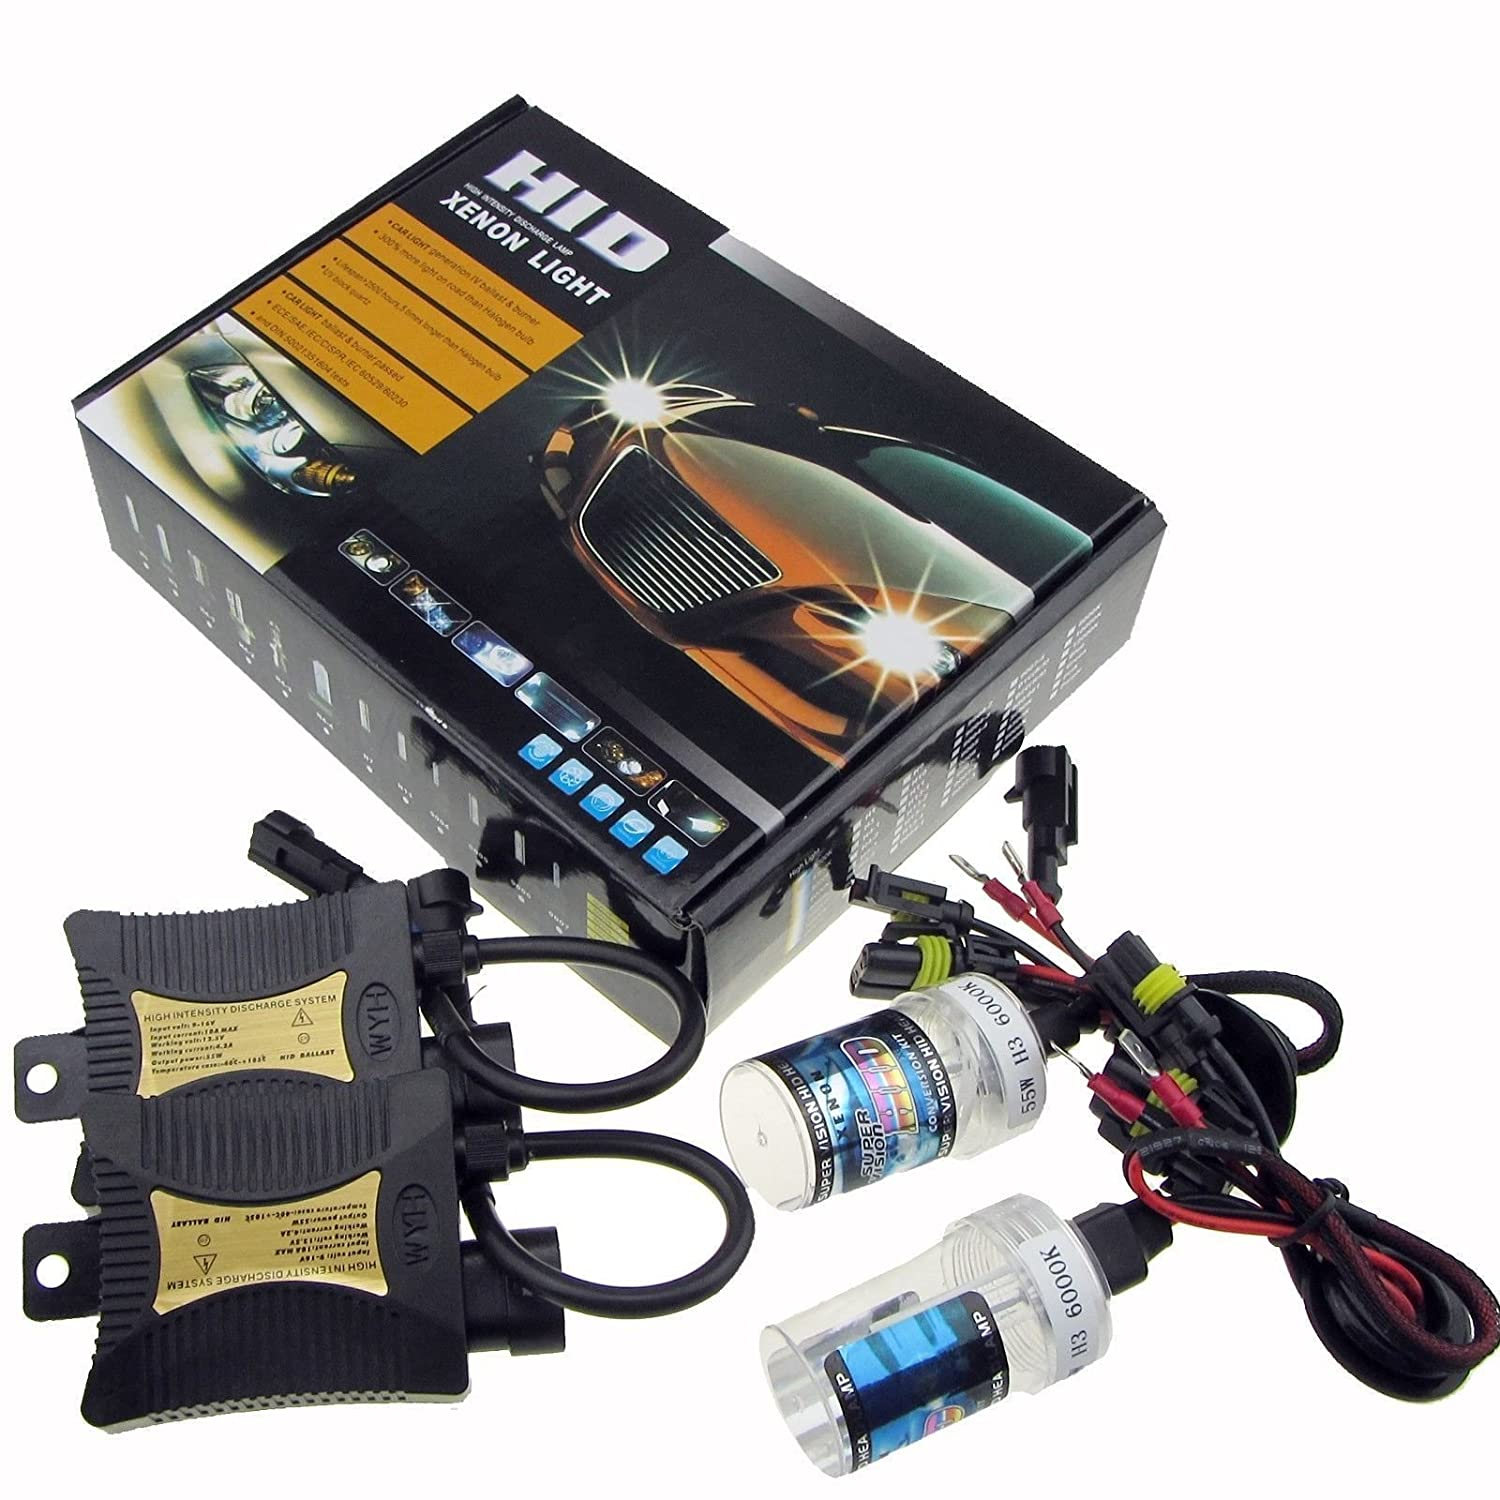 JINYJIA 12V 55W Xenon HID Conversion Kit Headlight for Car Vehicle Replacement Bulb, H7/10000K SHENZHEN JINYJIA ELECTRONICS TECHNOLOGY CO. LTD.